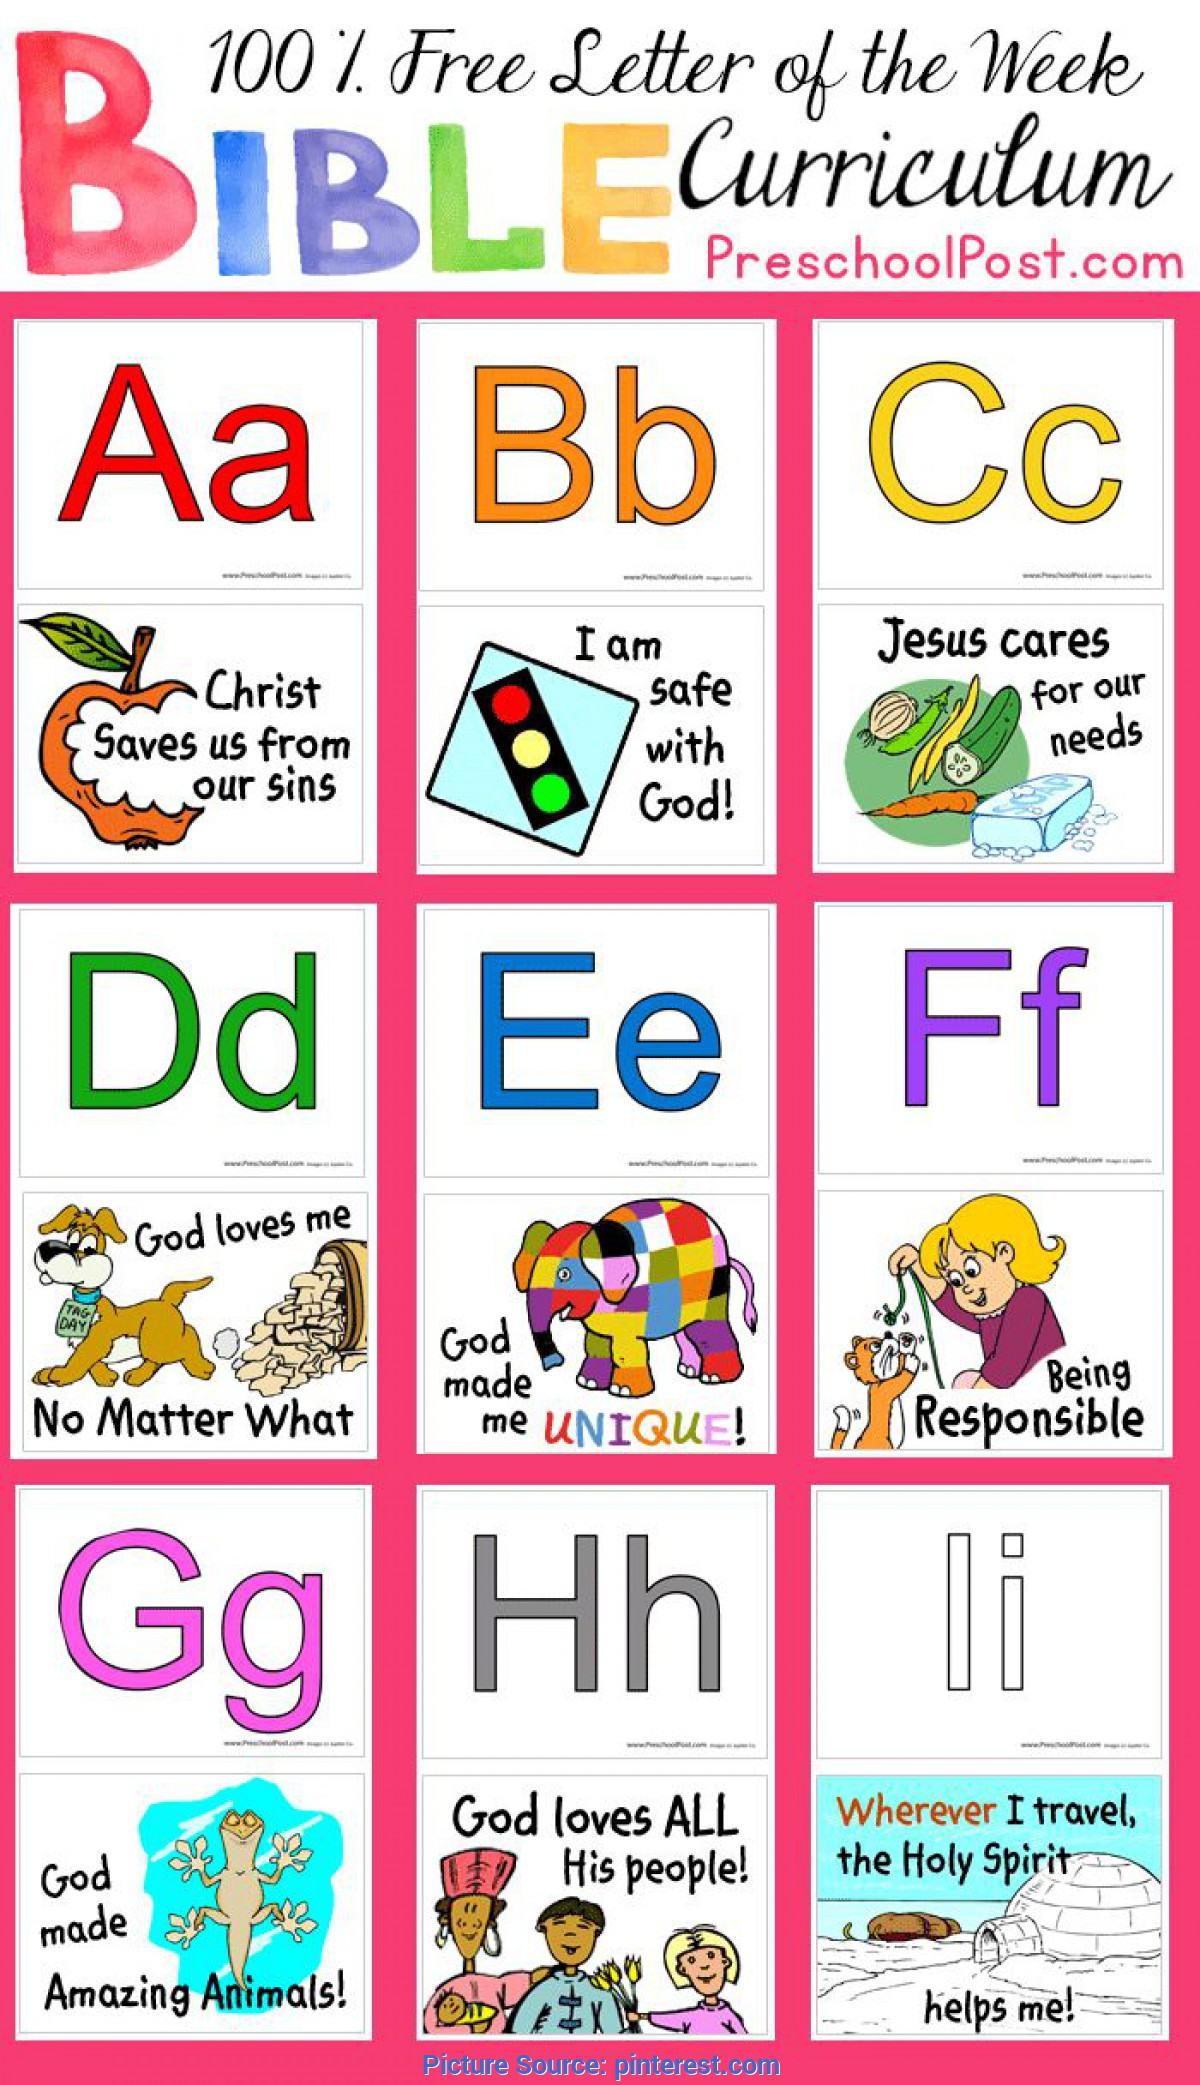 Typical Toddler Preschool Curriculum 36 Weeks Of Free Preschool Lessons! This Free Letter Of The Wee